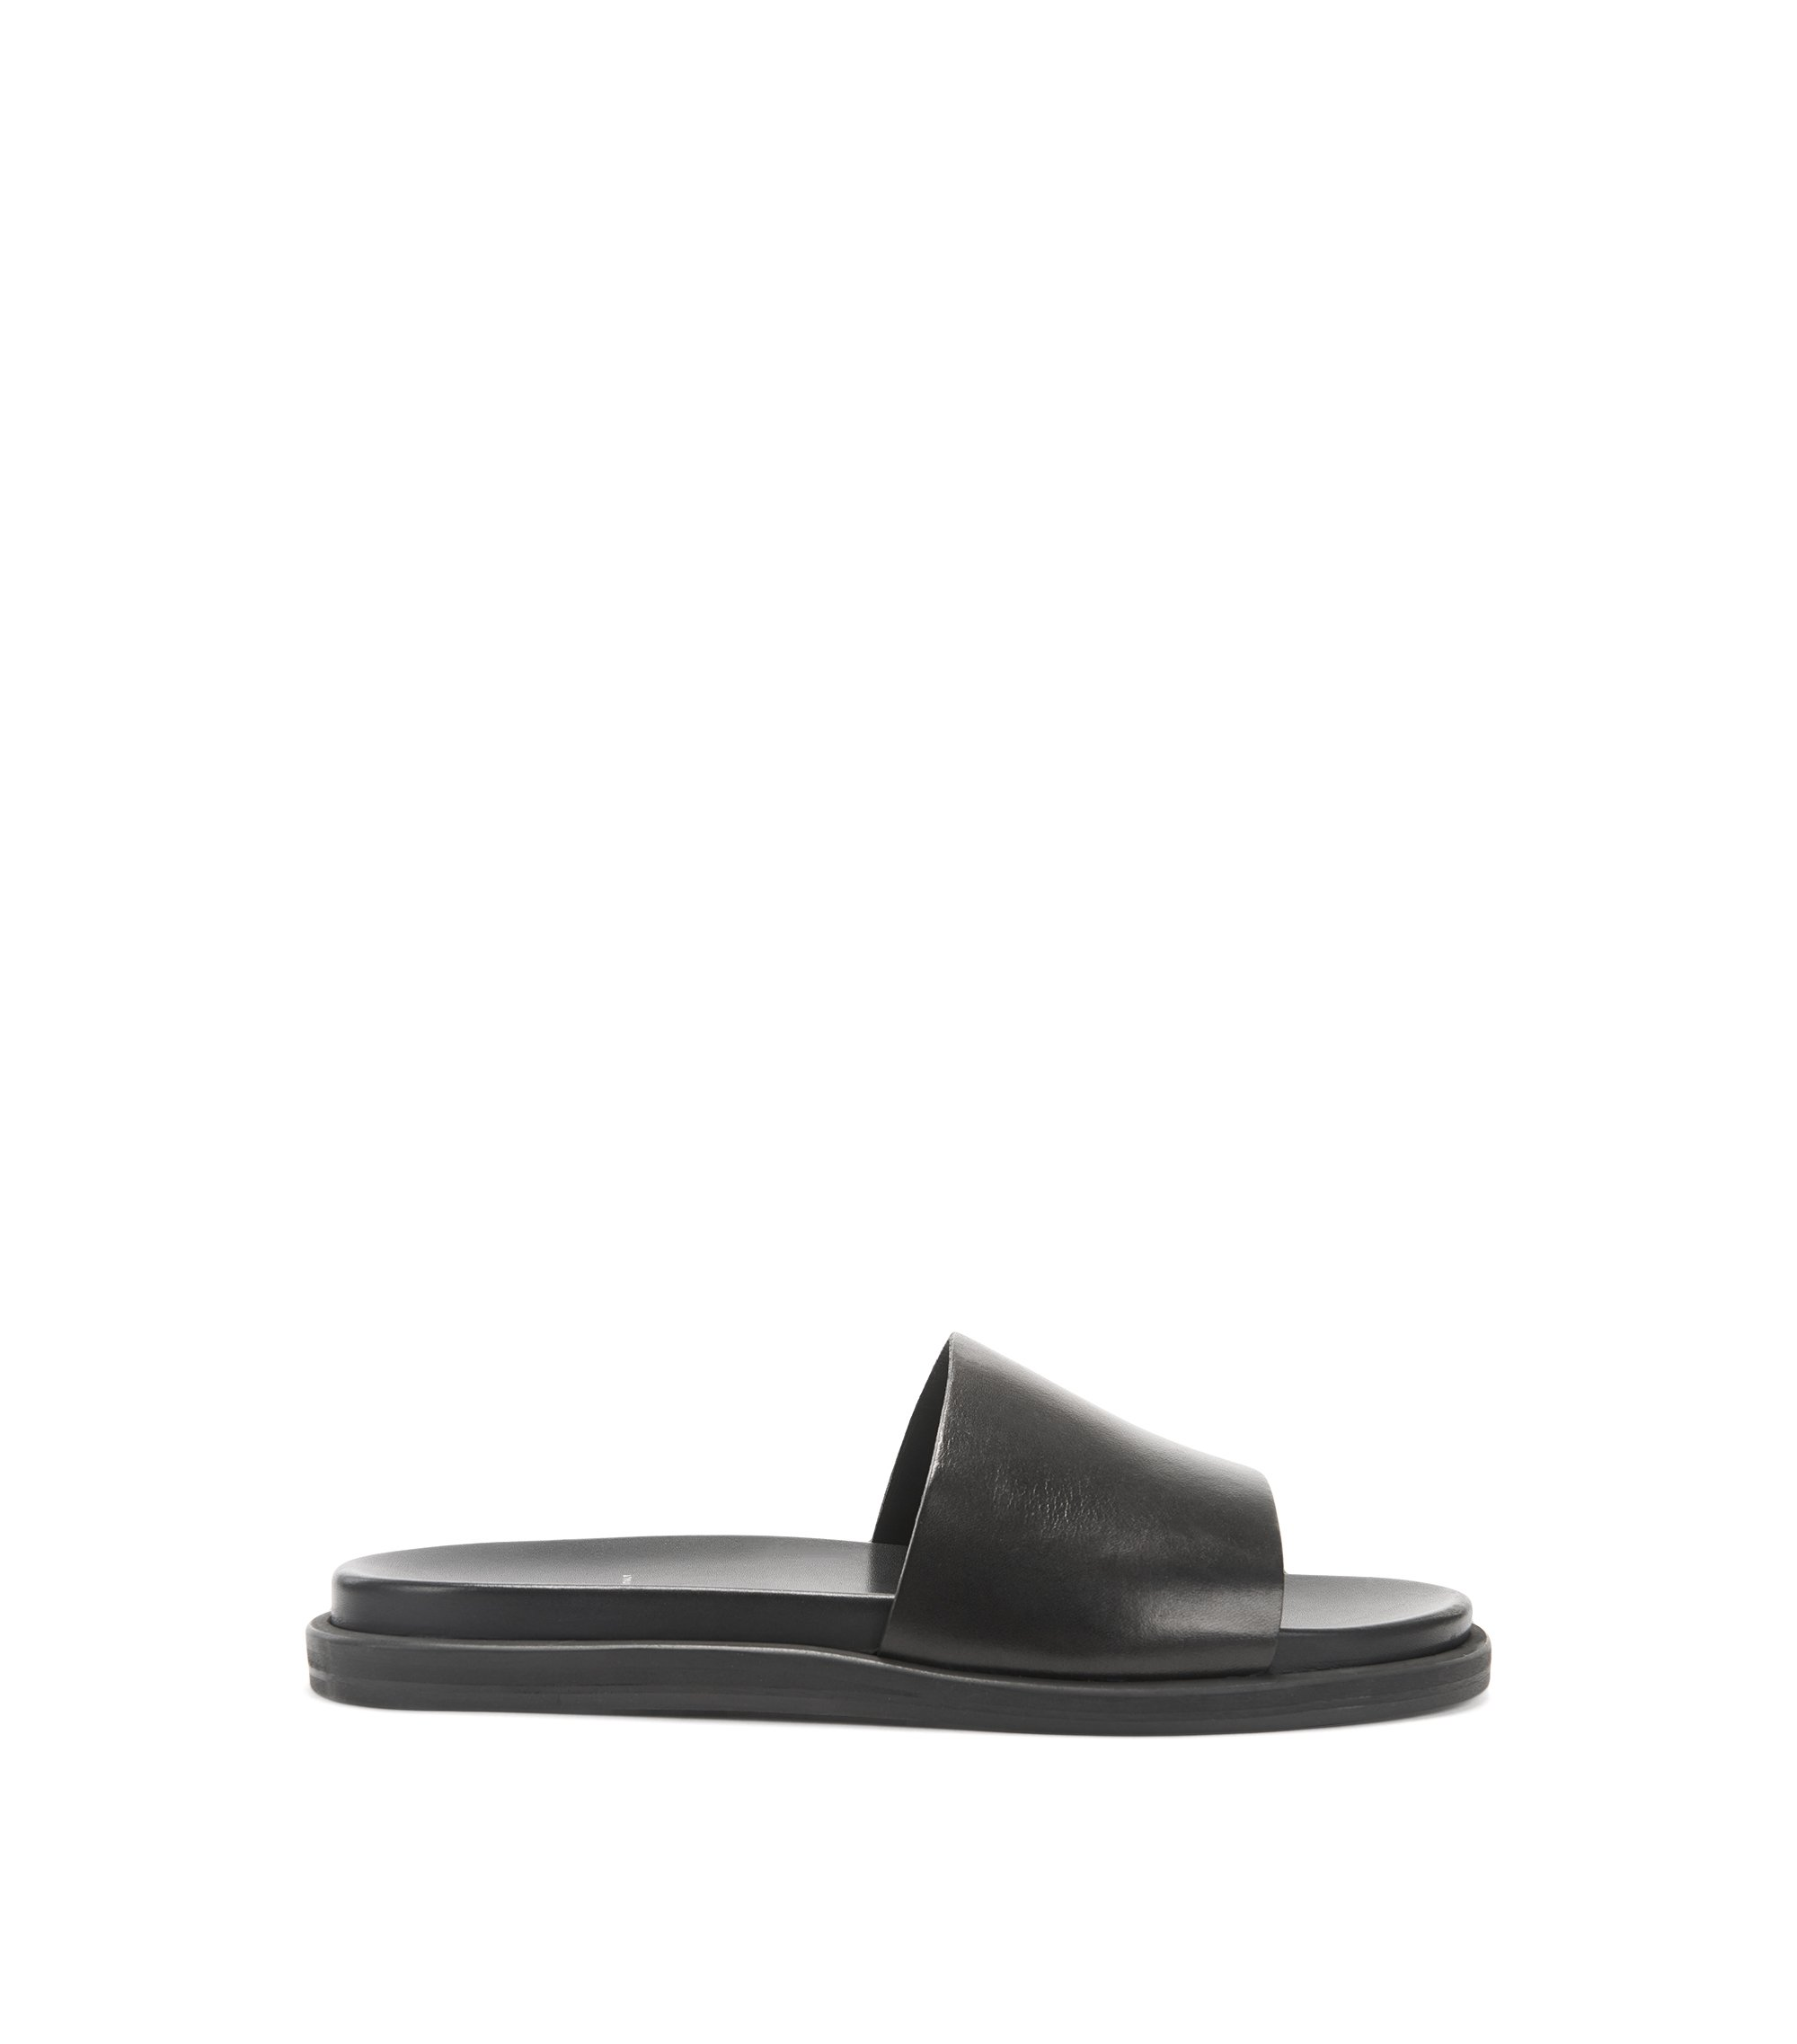 Italian-made calf-leather slider sandals with shaped footbed, Black